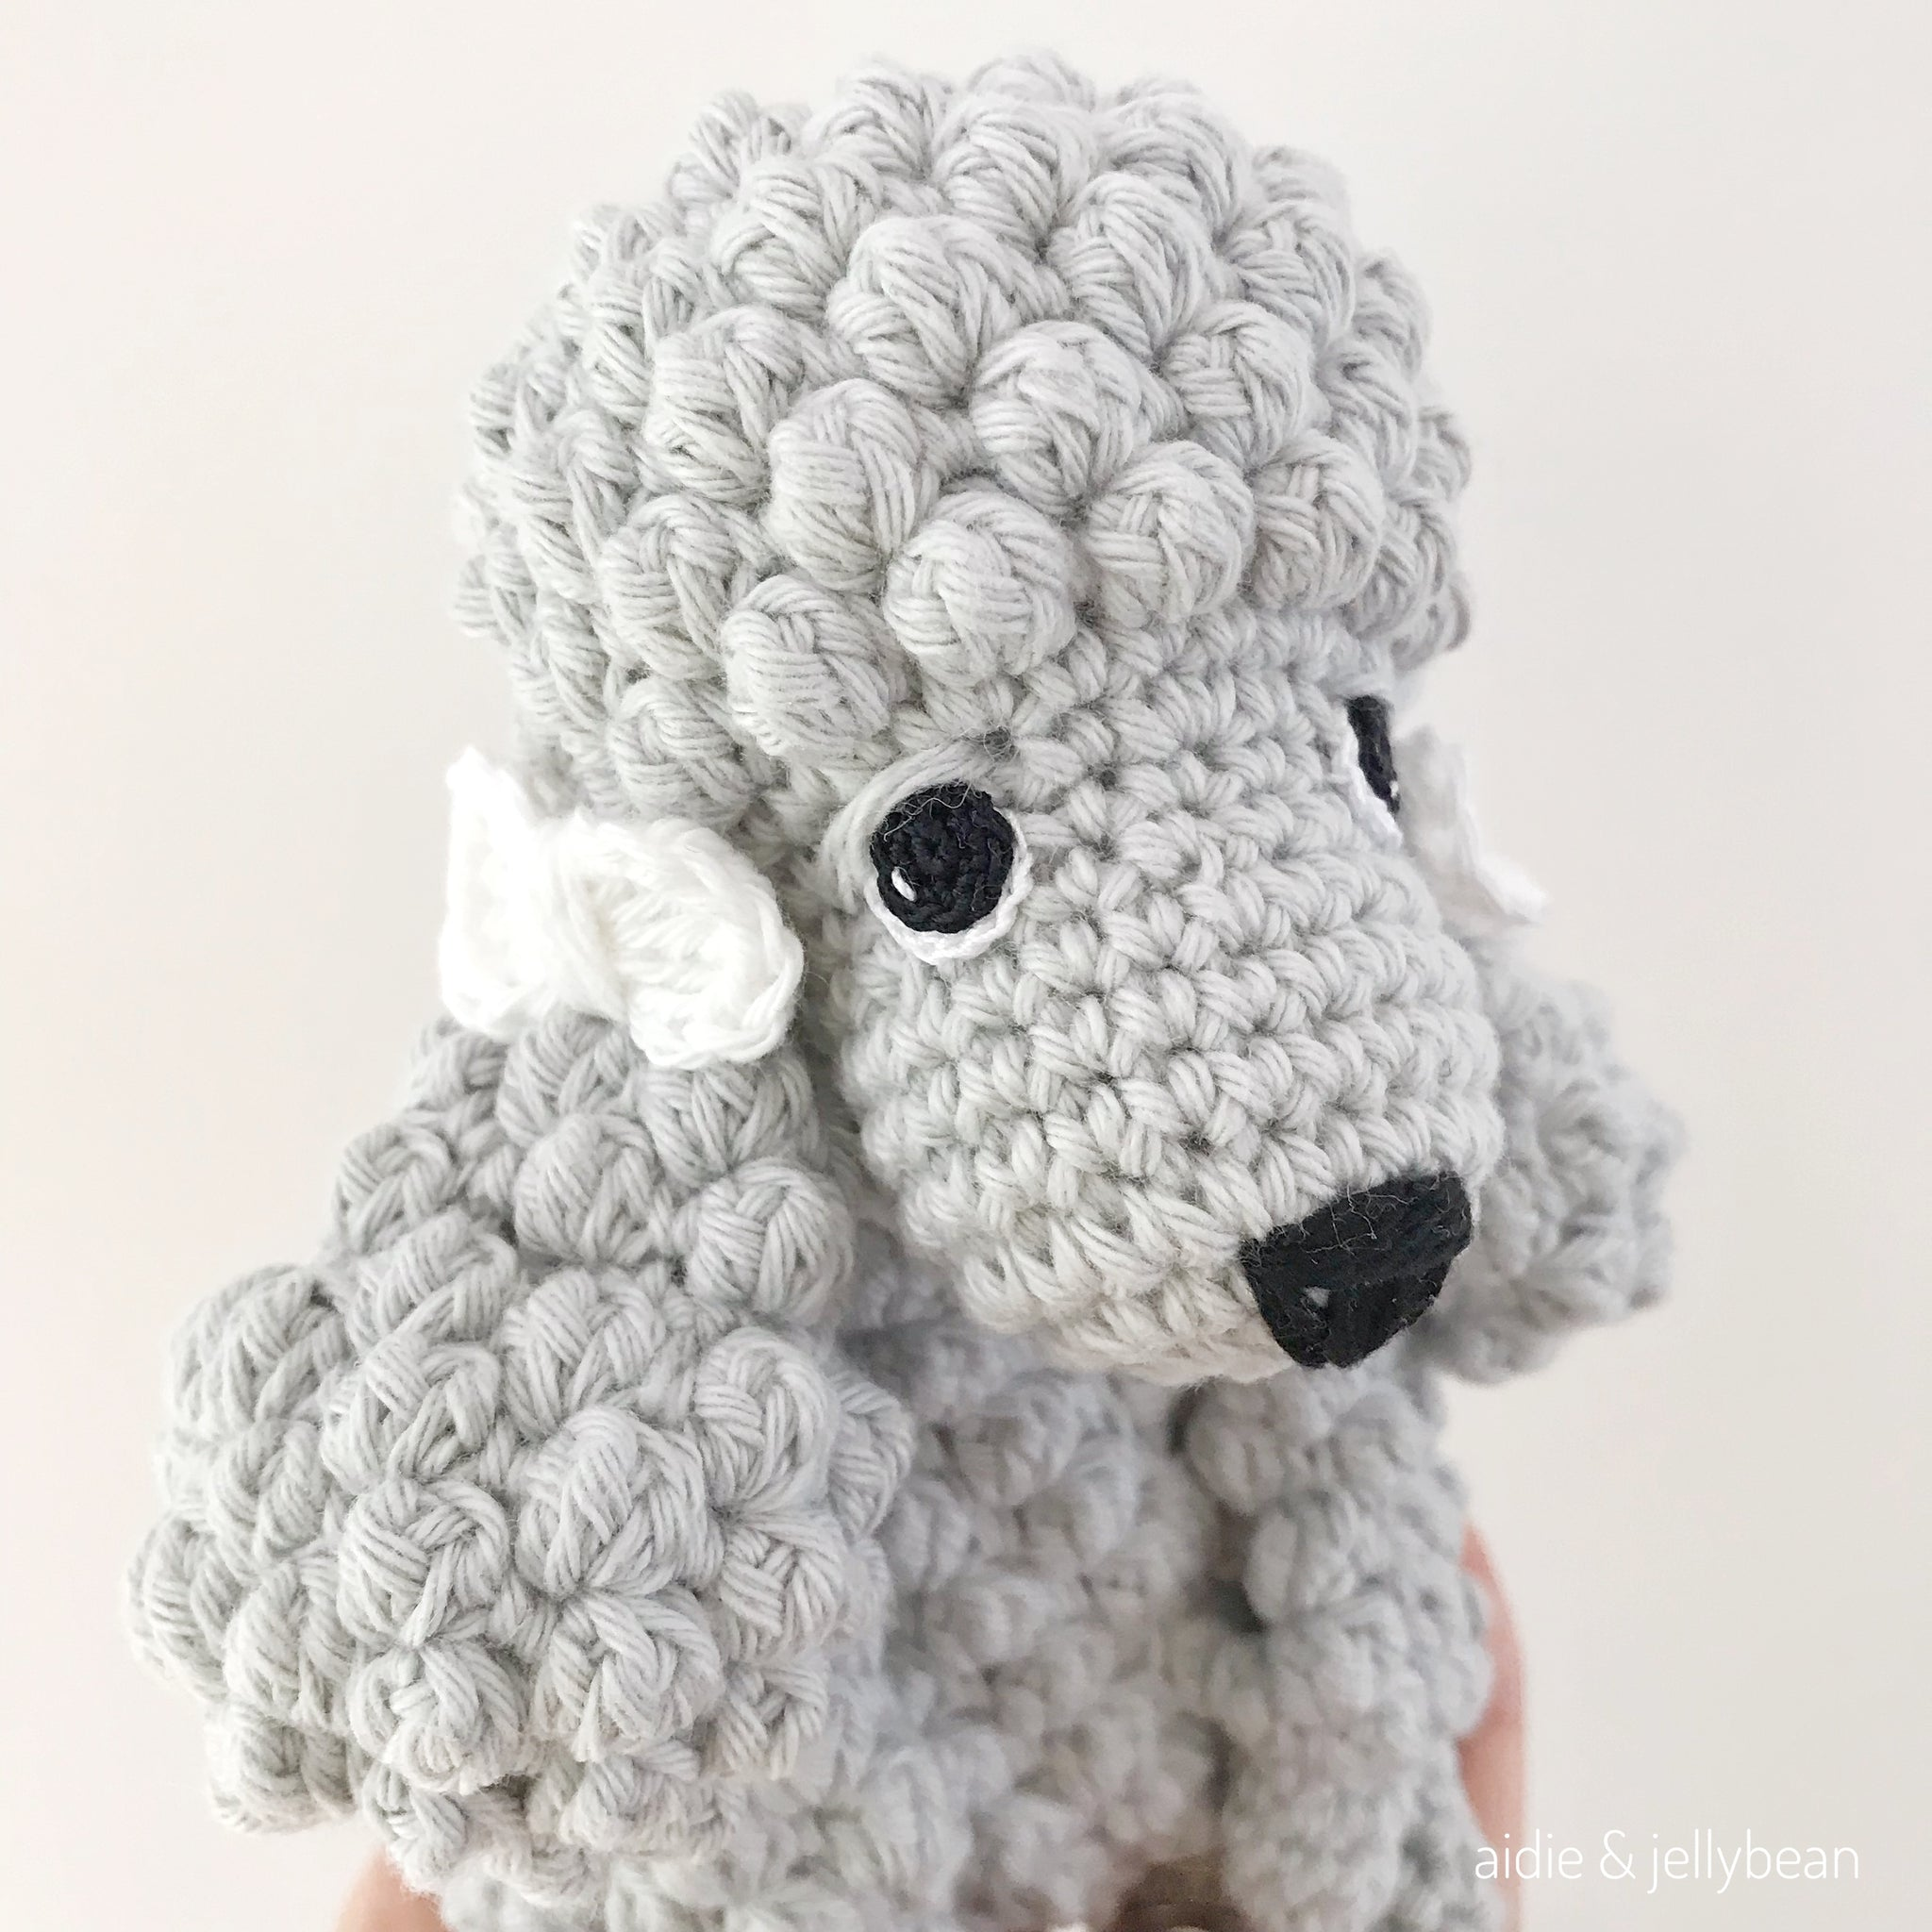 1000's of Free Amigurumi and Toy Crochet Patterns (535 free ... | 2048x2048